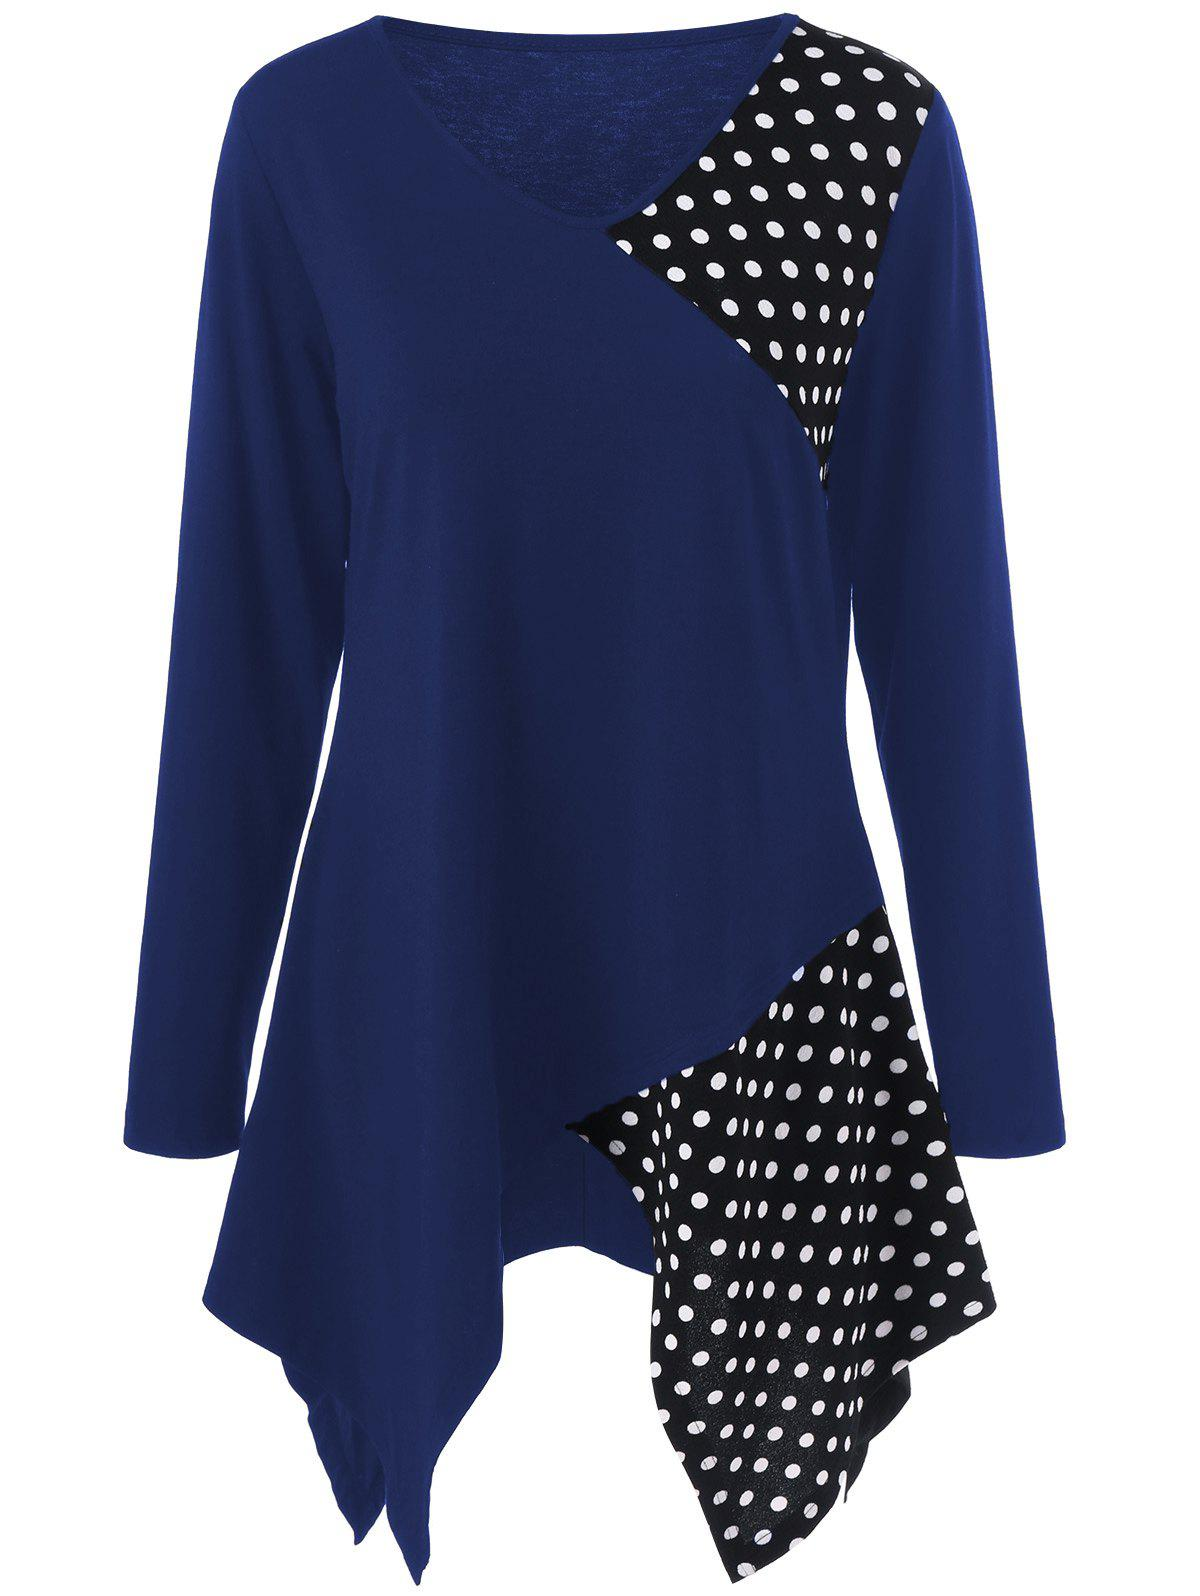 Plus Size Polka Dot Trim Asymmetrical Long Sleeve T-Shirt - BLUE XL